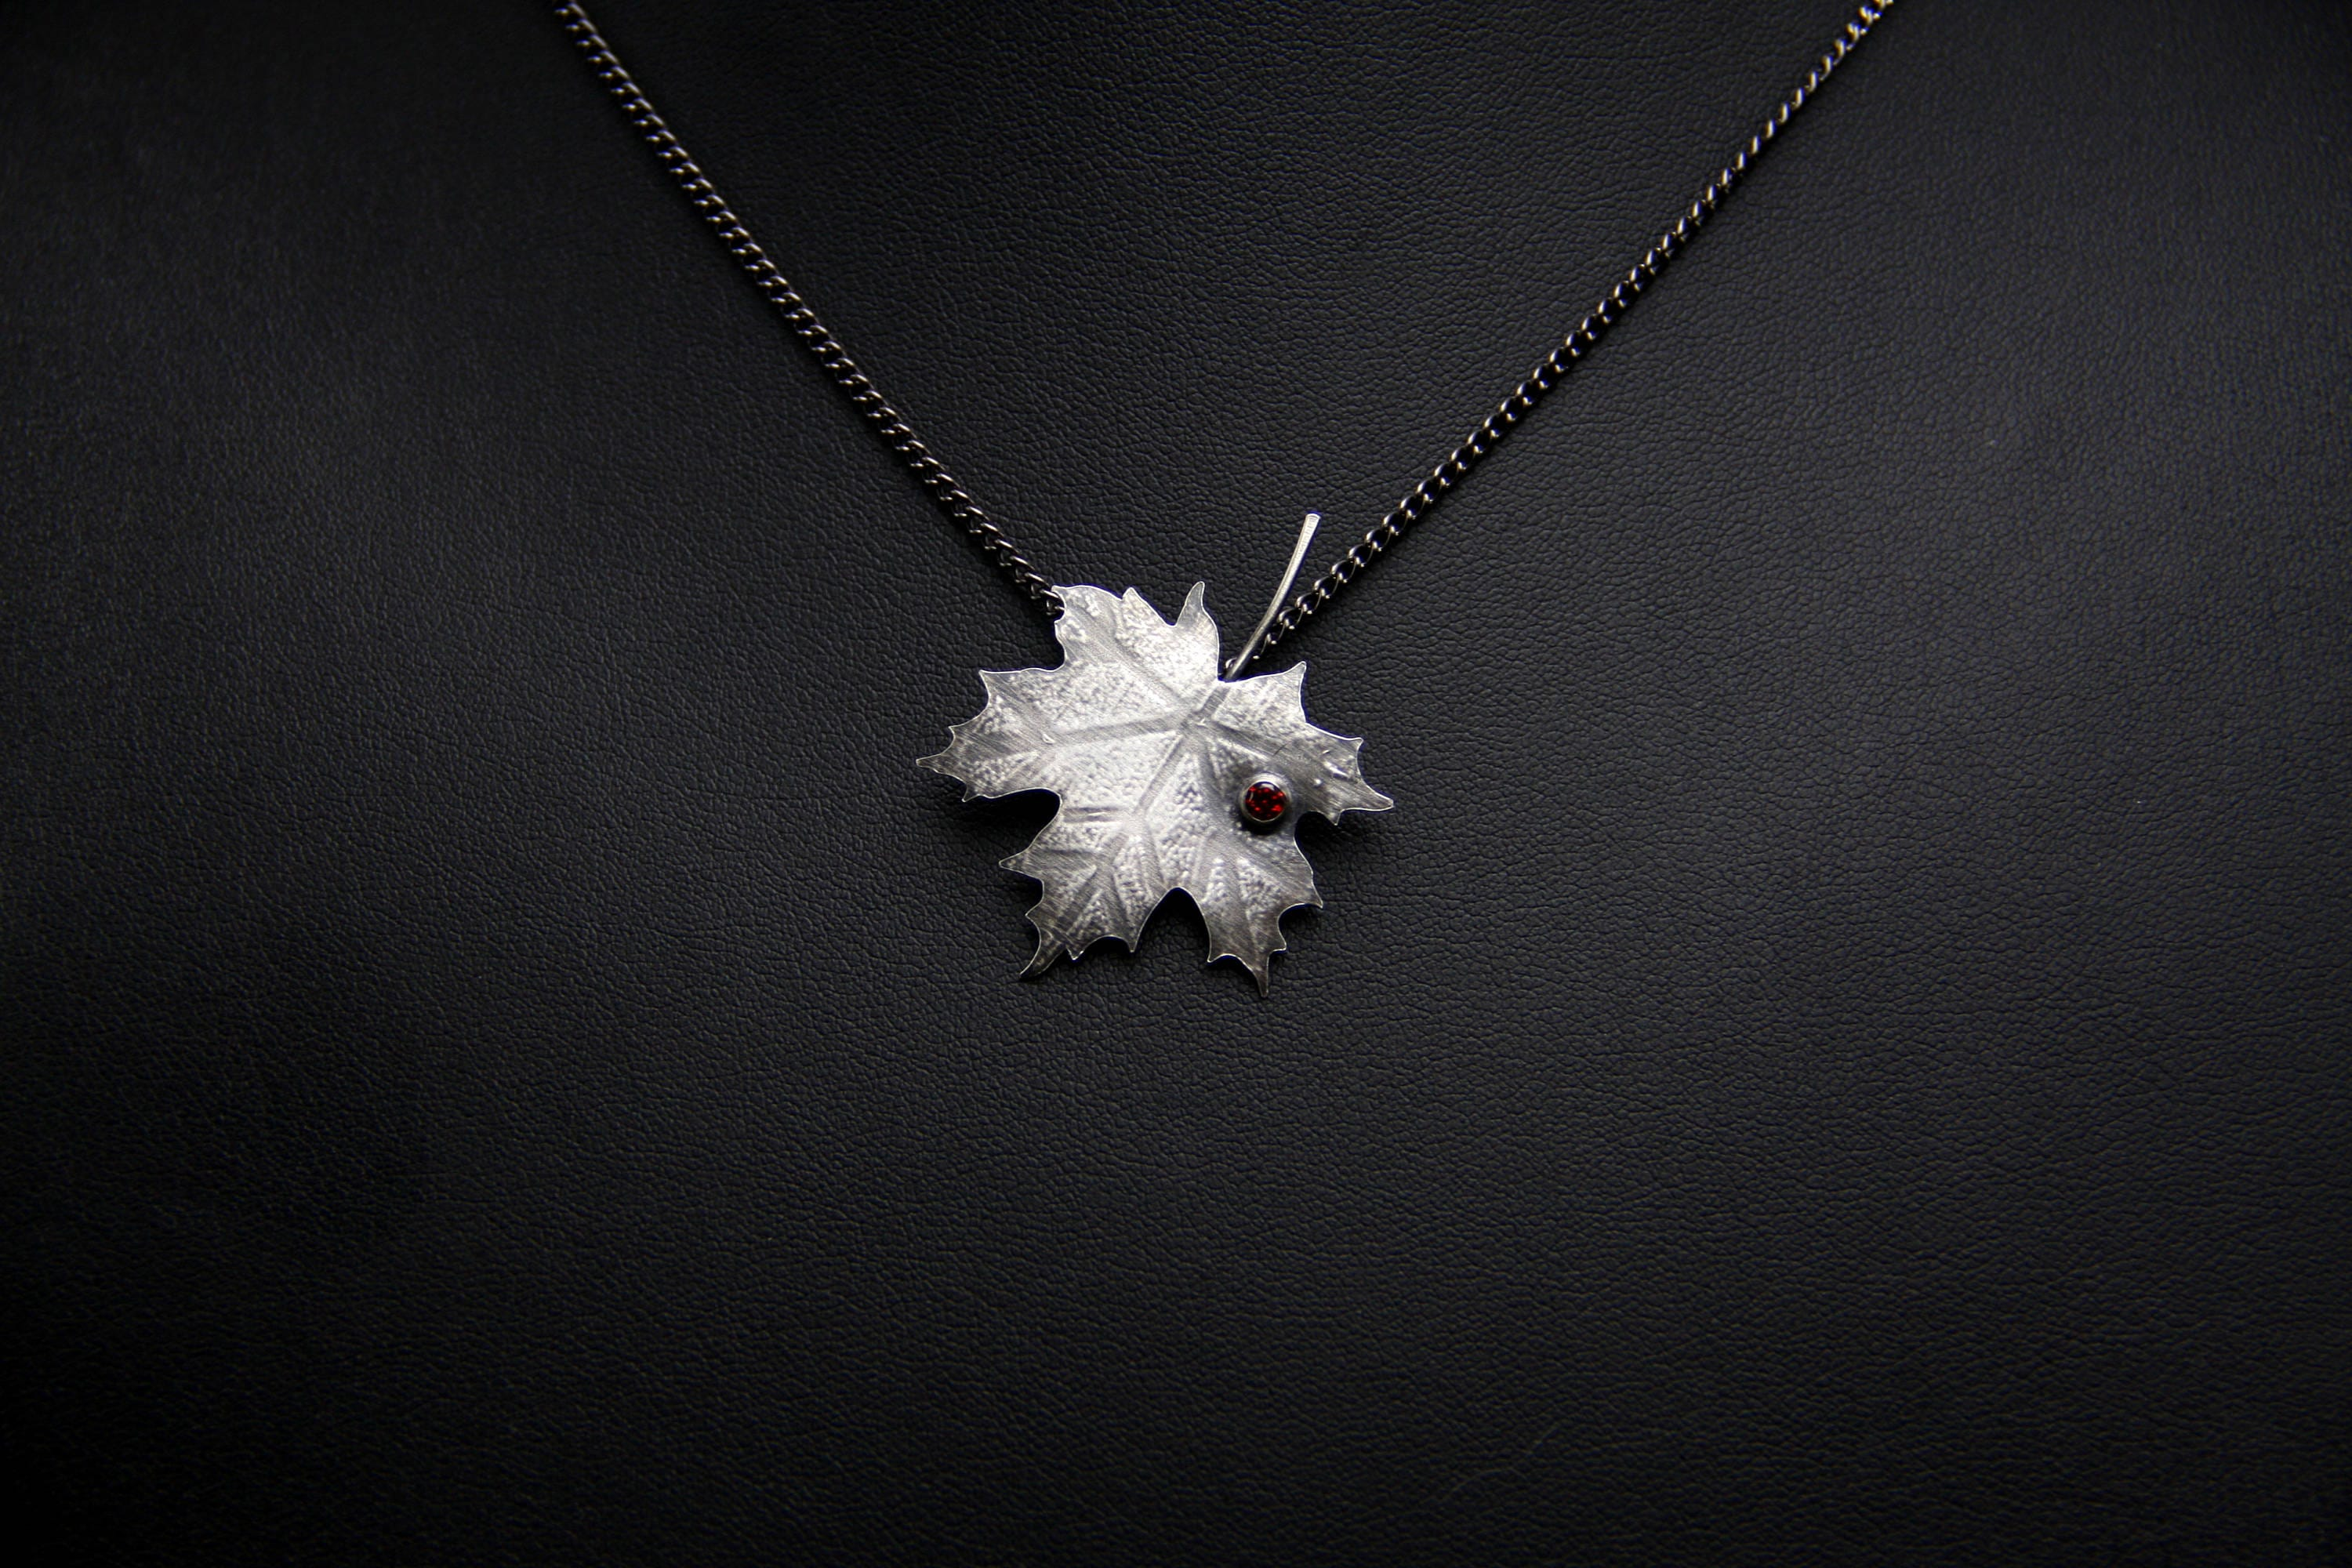 iced silver maple necklacependant pendant hip weed necklaces leaf new gold long chains plated out hiphop necklace shop